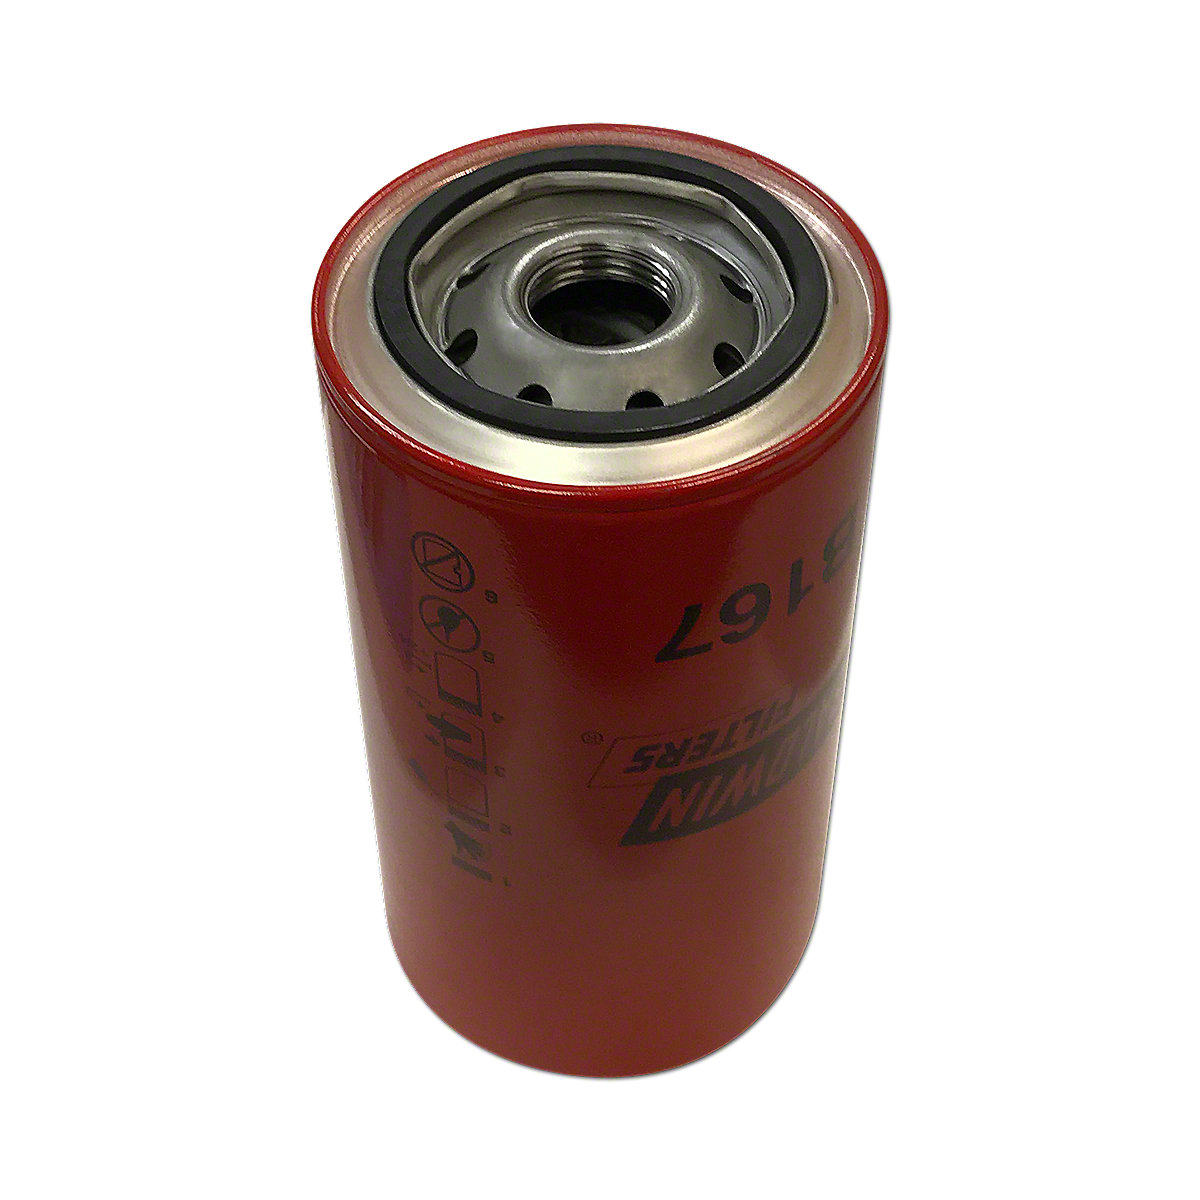 Spin-On Oil Filter ABC3925